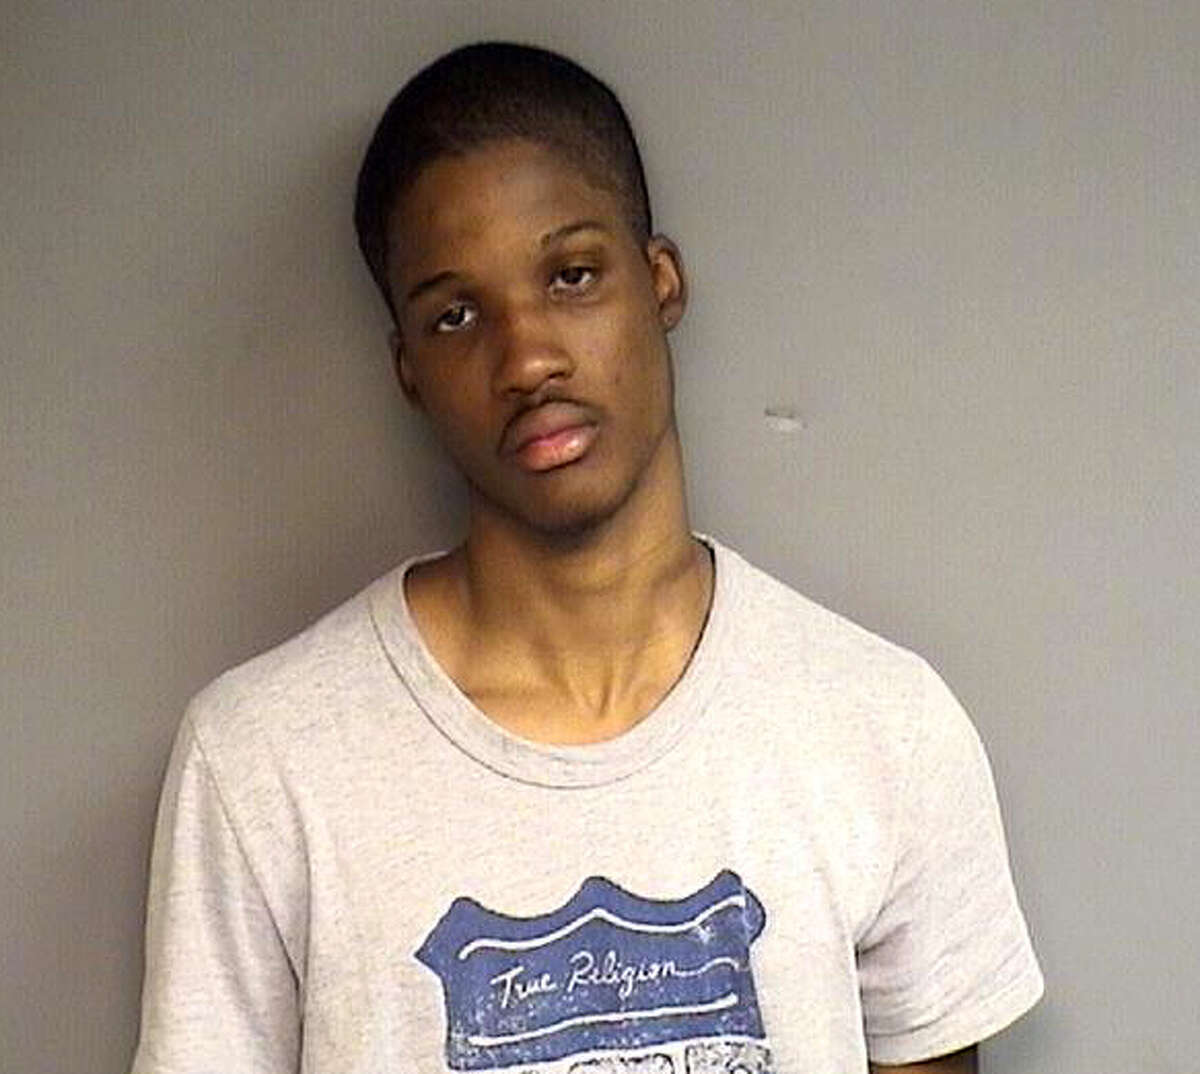 Cadeim Beckford, 20, of Carpenter Avenue in The Bronx was taken into custody by Stamford police Tuesday, May 5, 2015, and extradited to New York, where he was wanted on gun trafficking charges. Police alleged that he is a member of the Bloods in New York City.